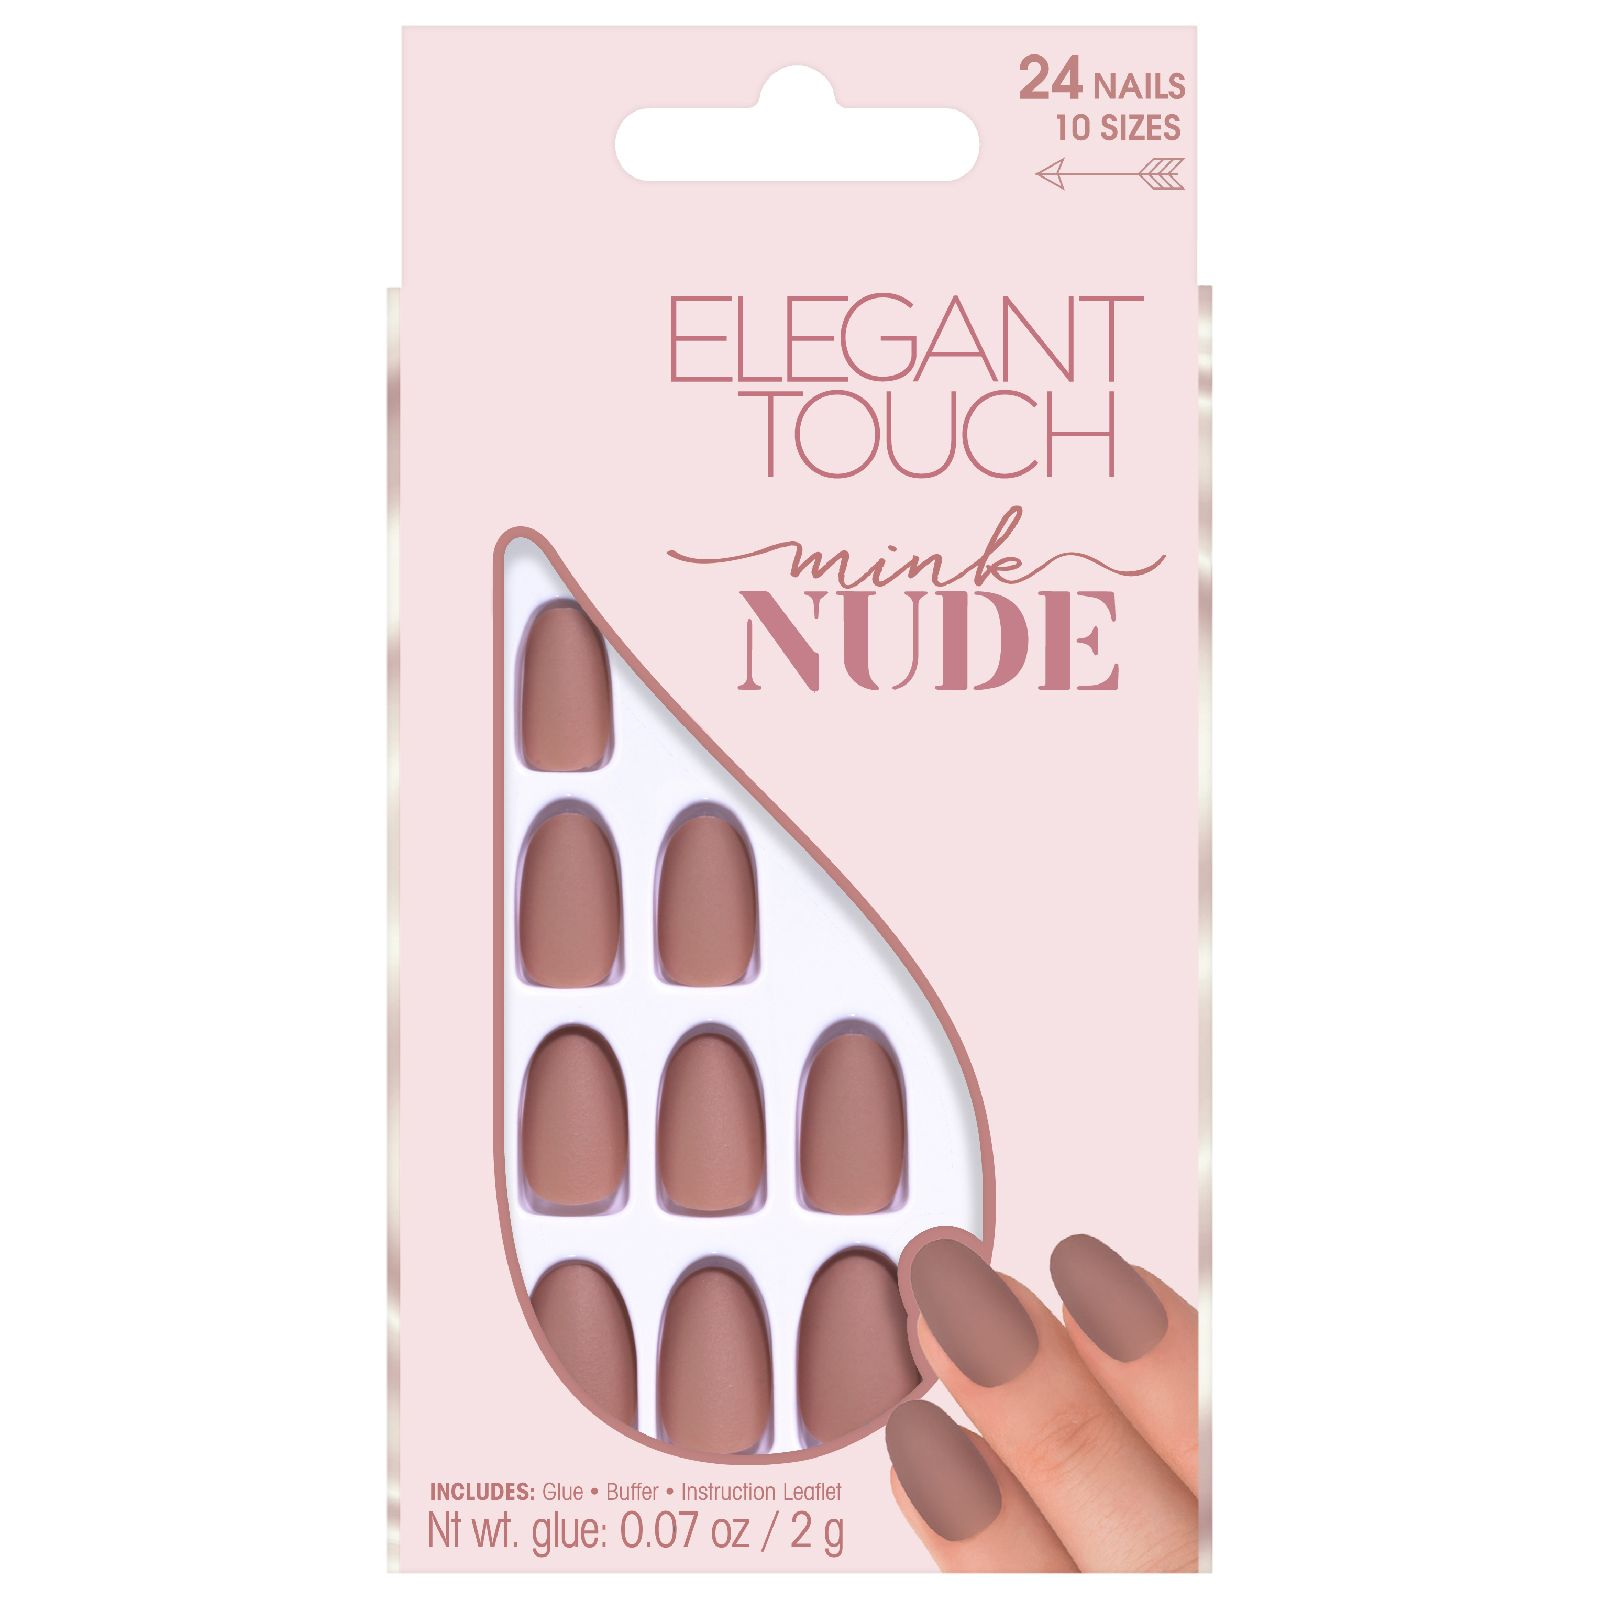 My Celebrity Life – Elegant Touch Nude Collection Nails in Mink